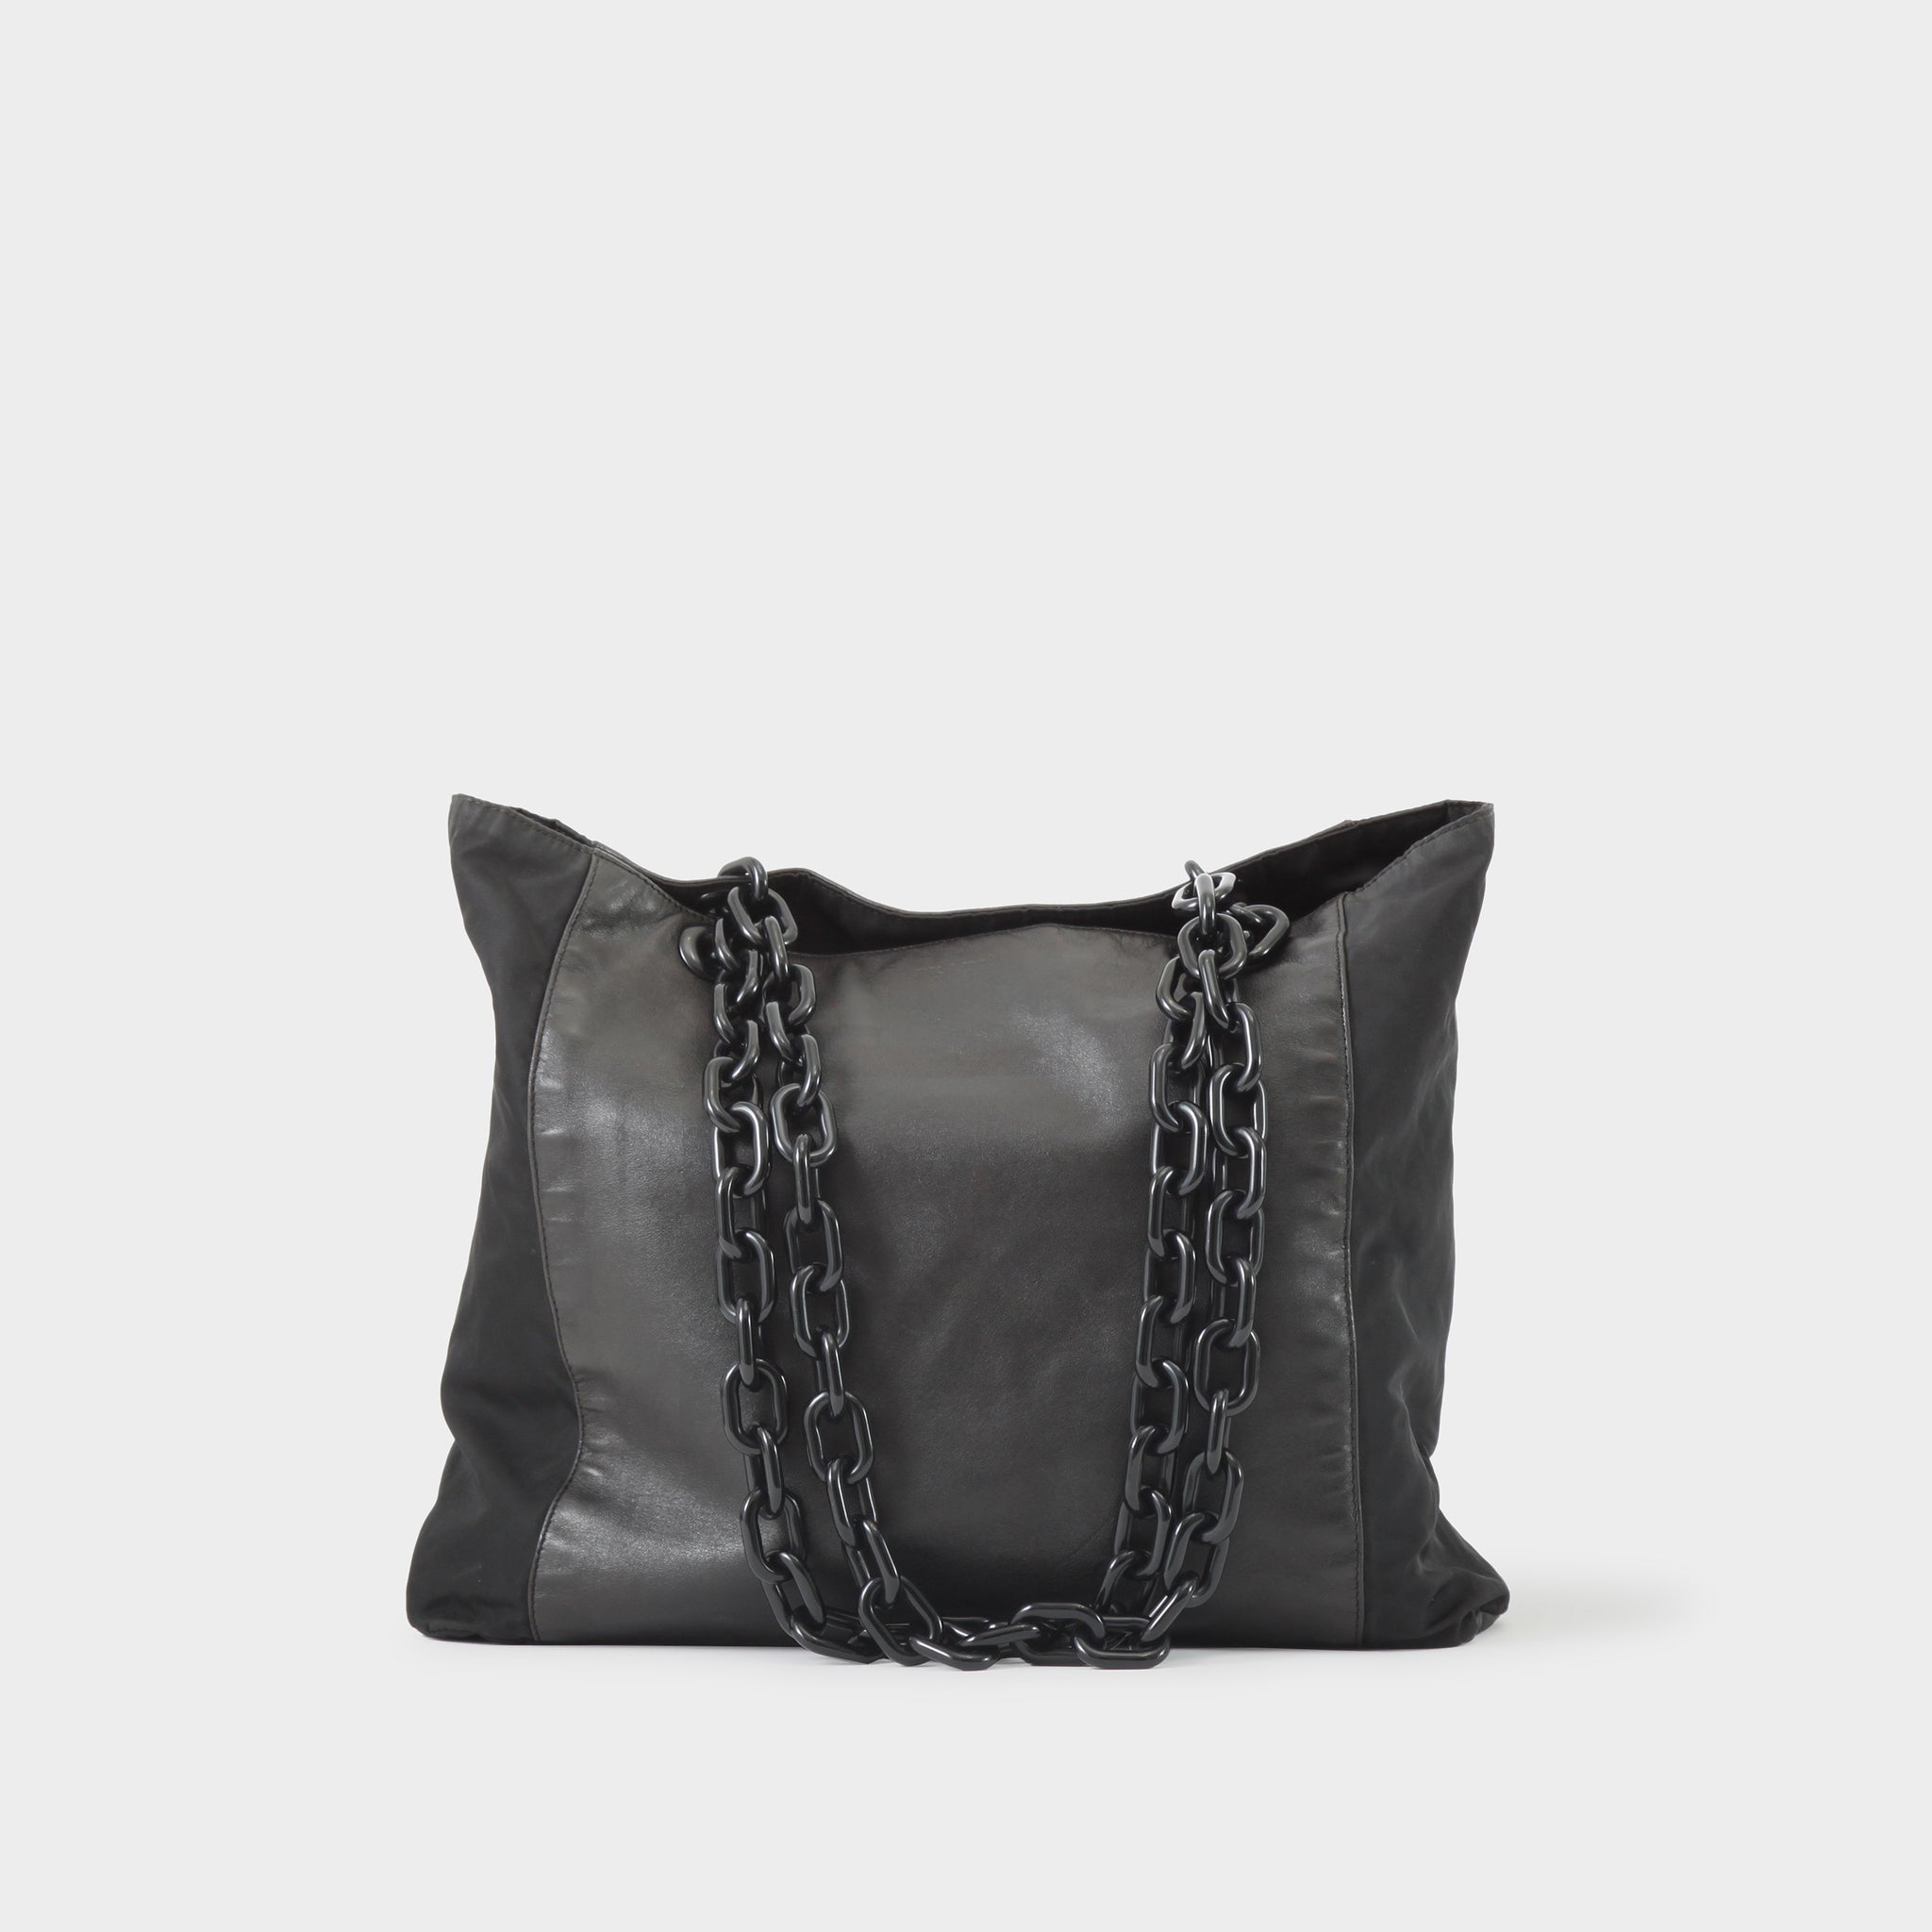 Prada Vintage Leather Panelled Chain Tote